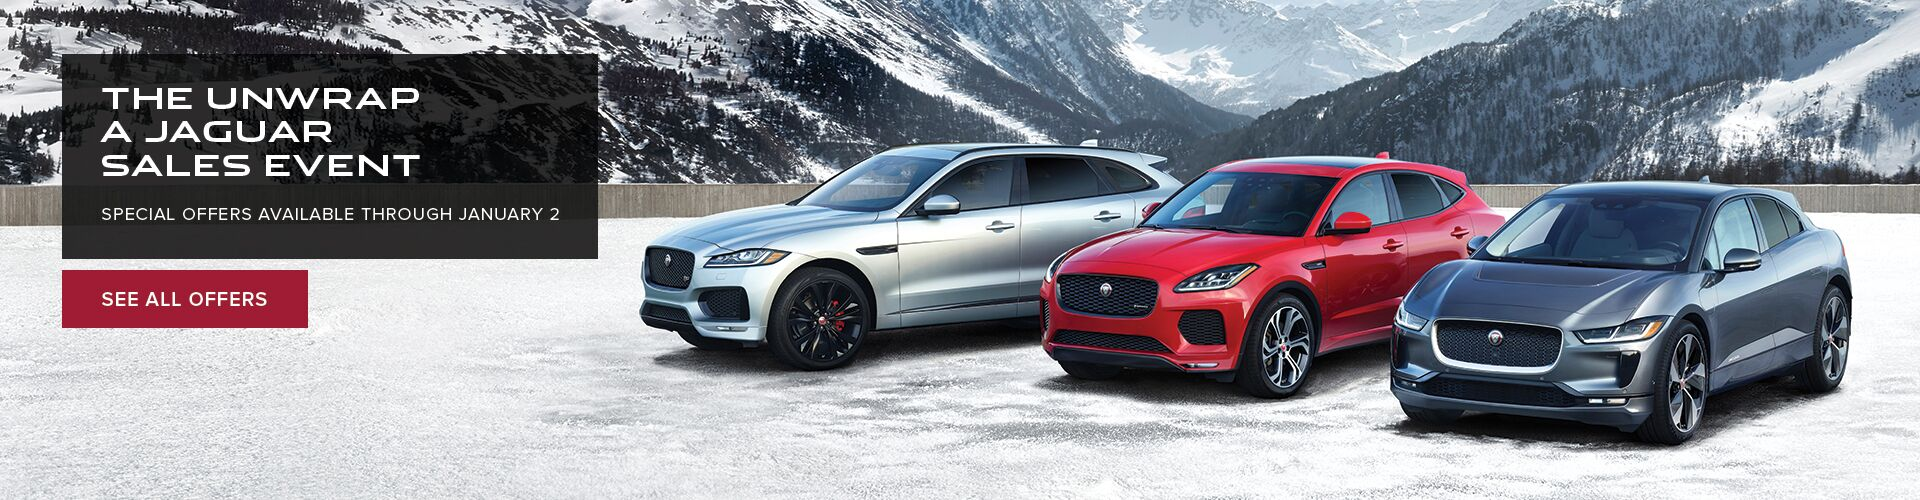 Jaguar Holiday Sales Events